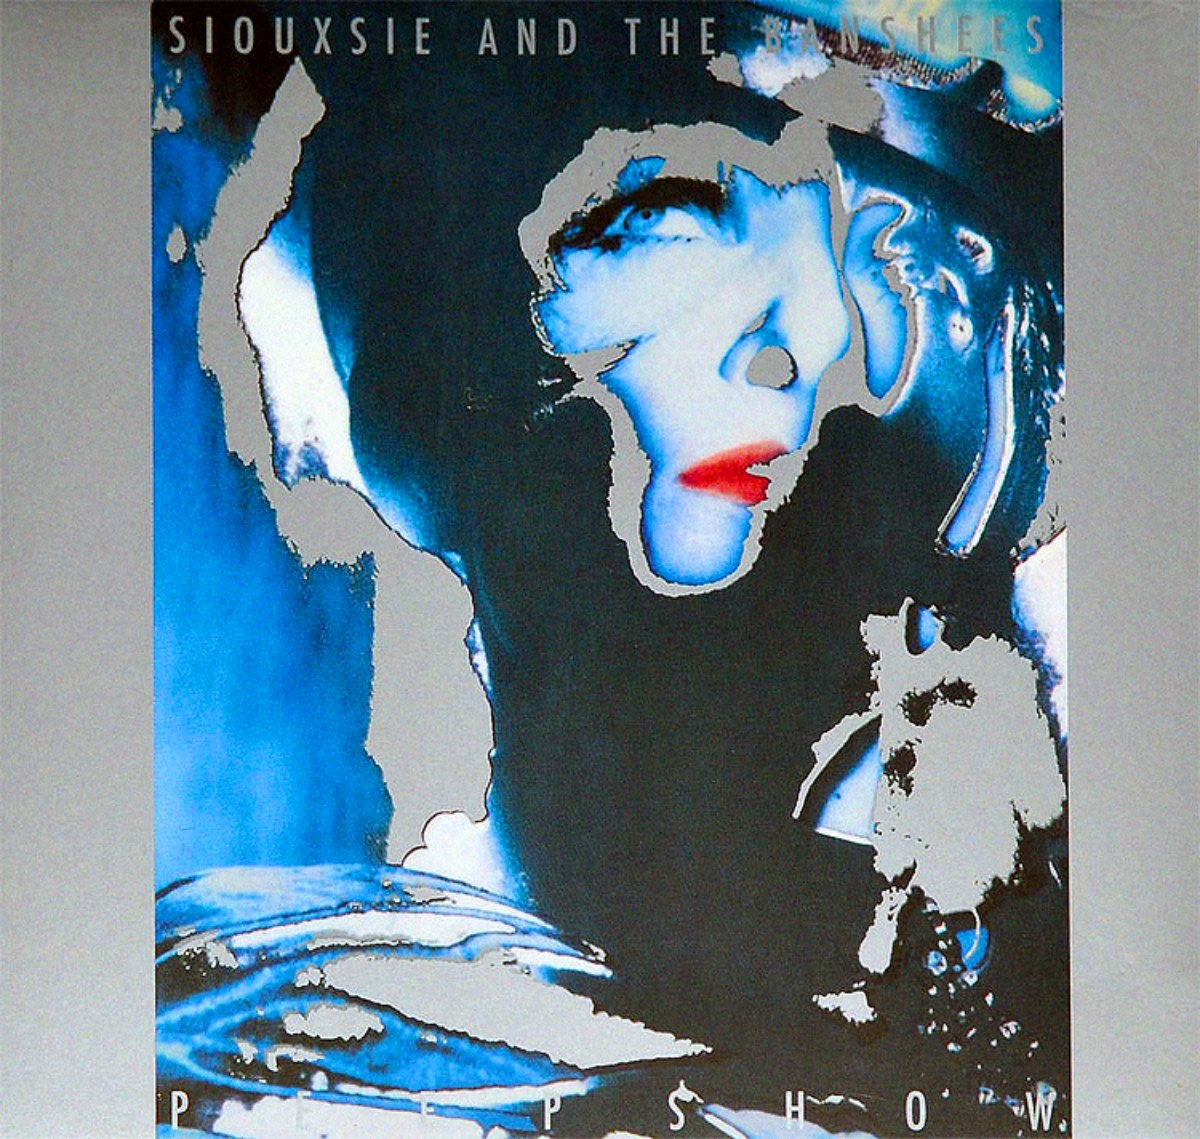 Siouxsie And The Banshees, альбом «Peepshow» (1988)